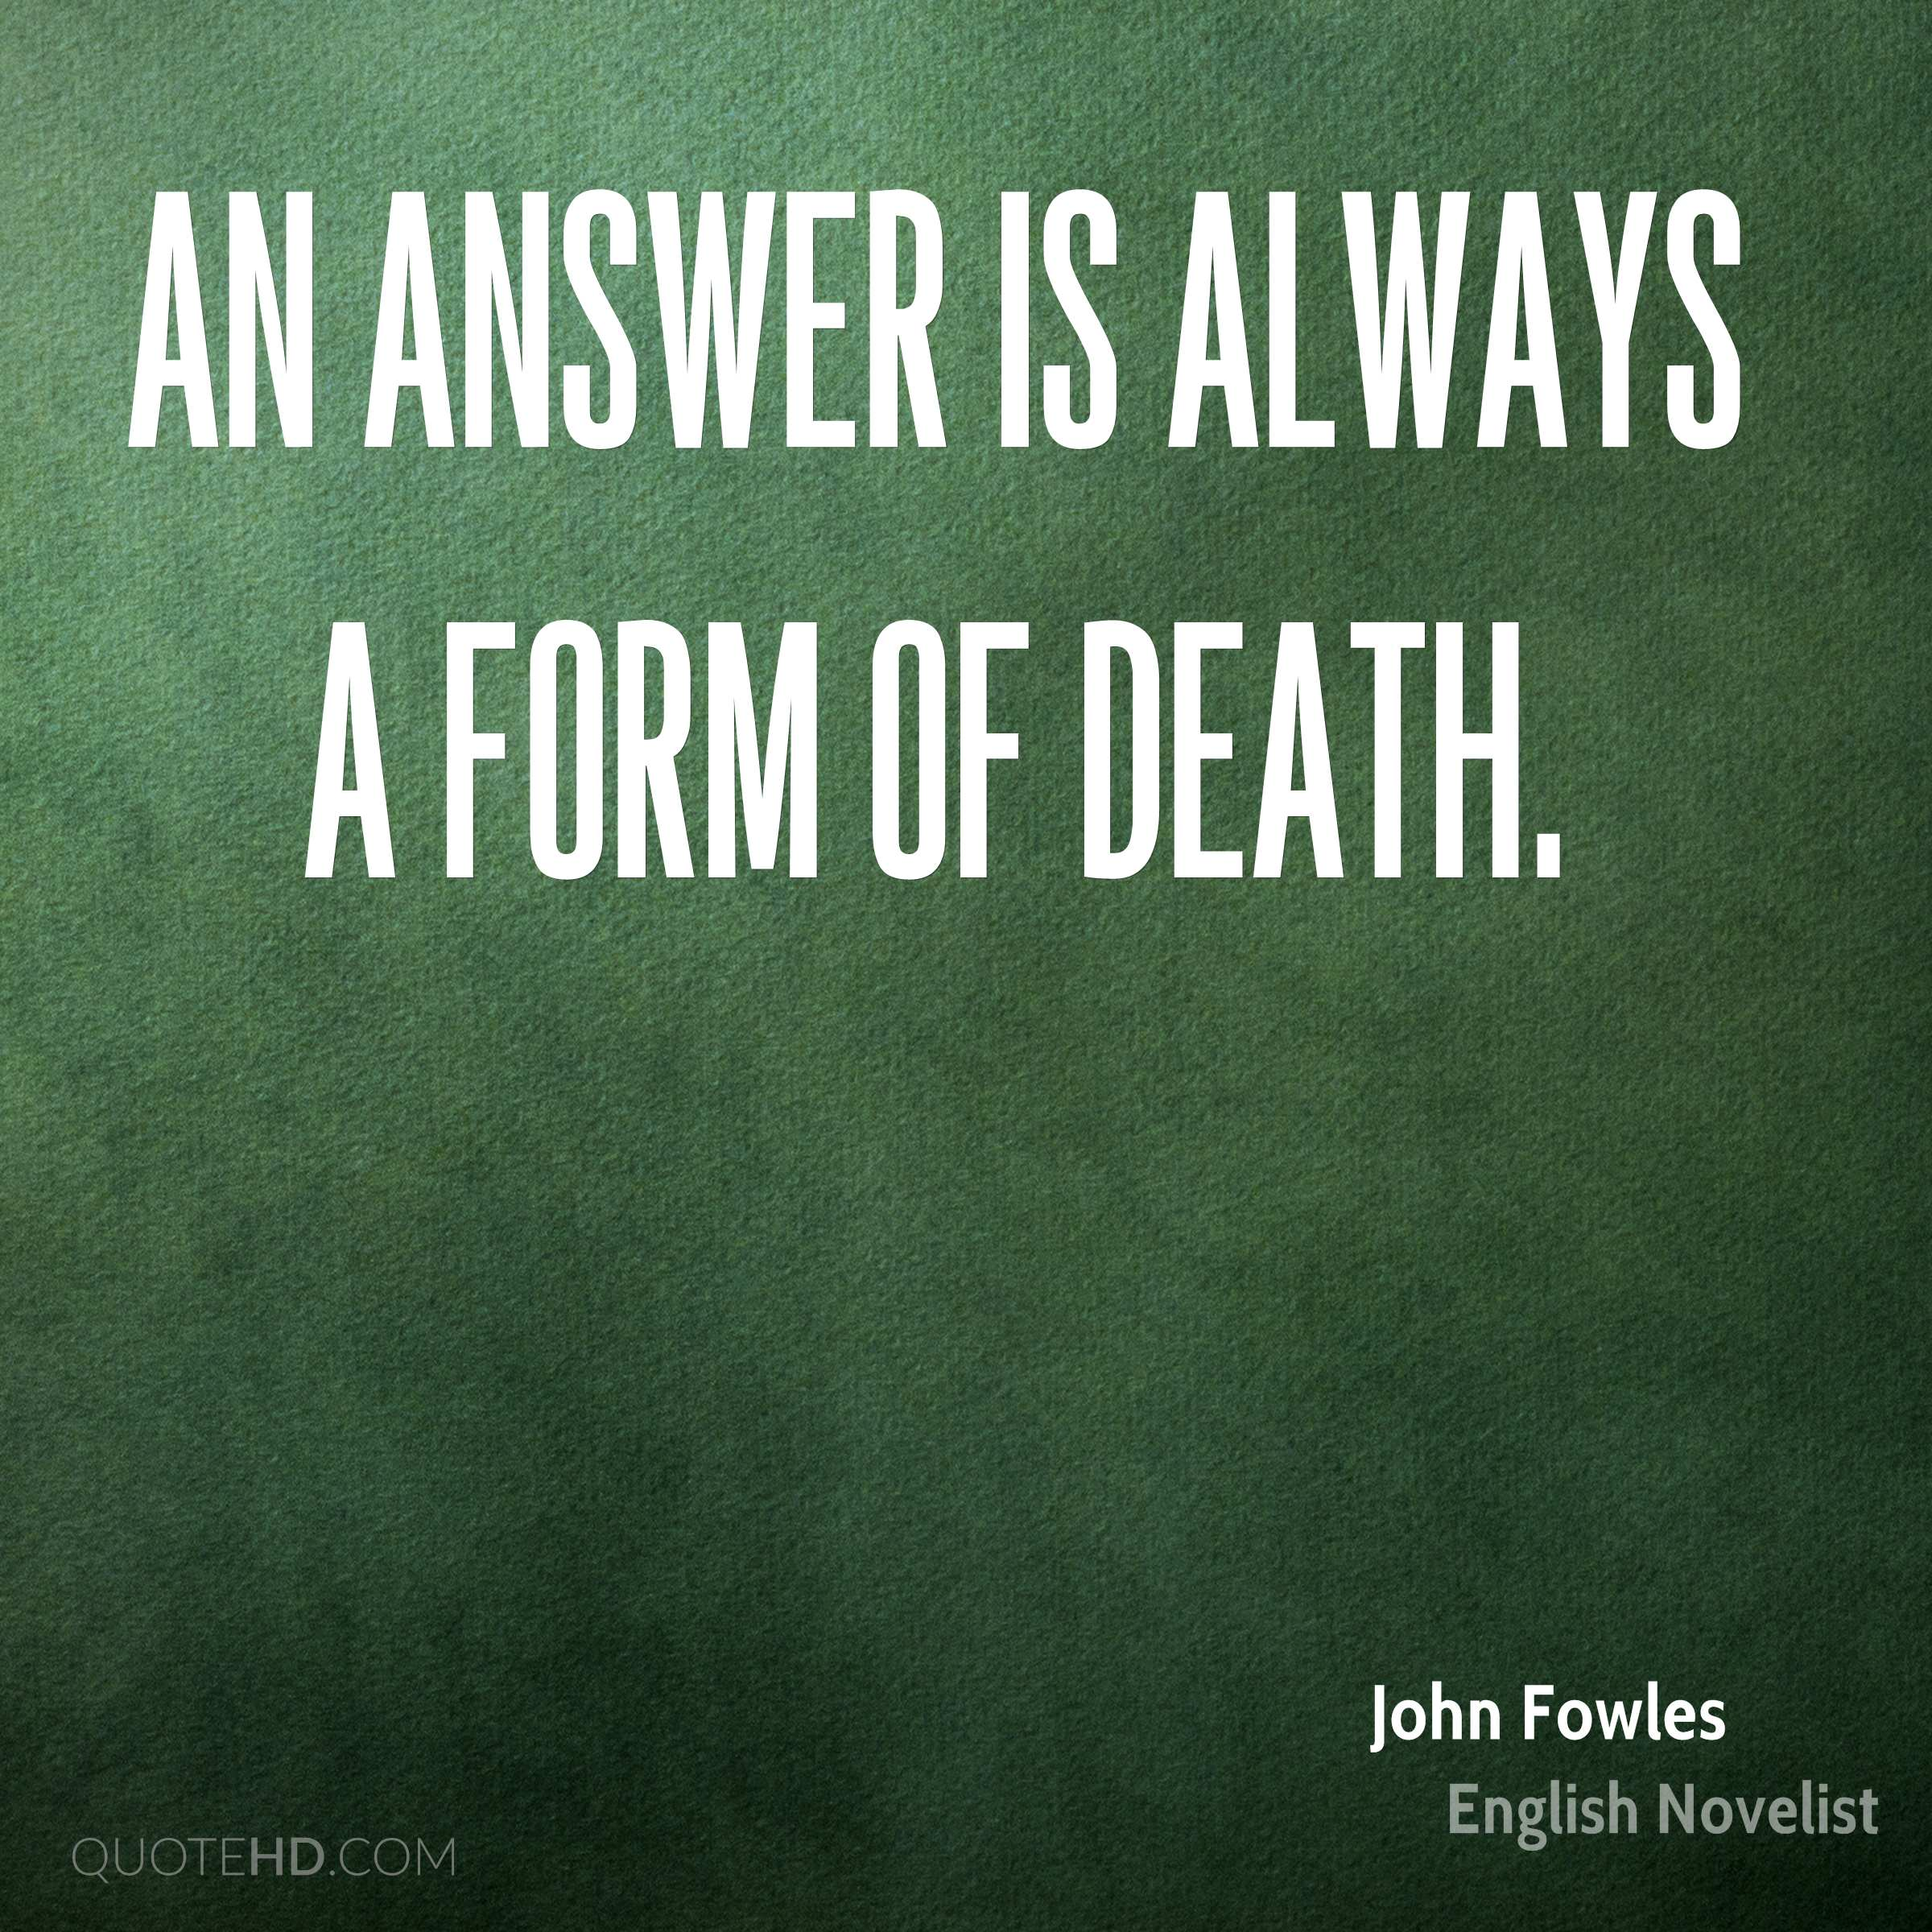 An answer is always a form of death.